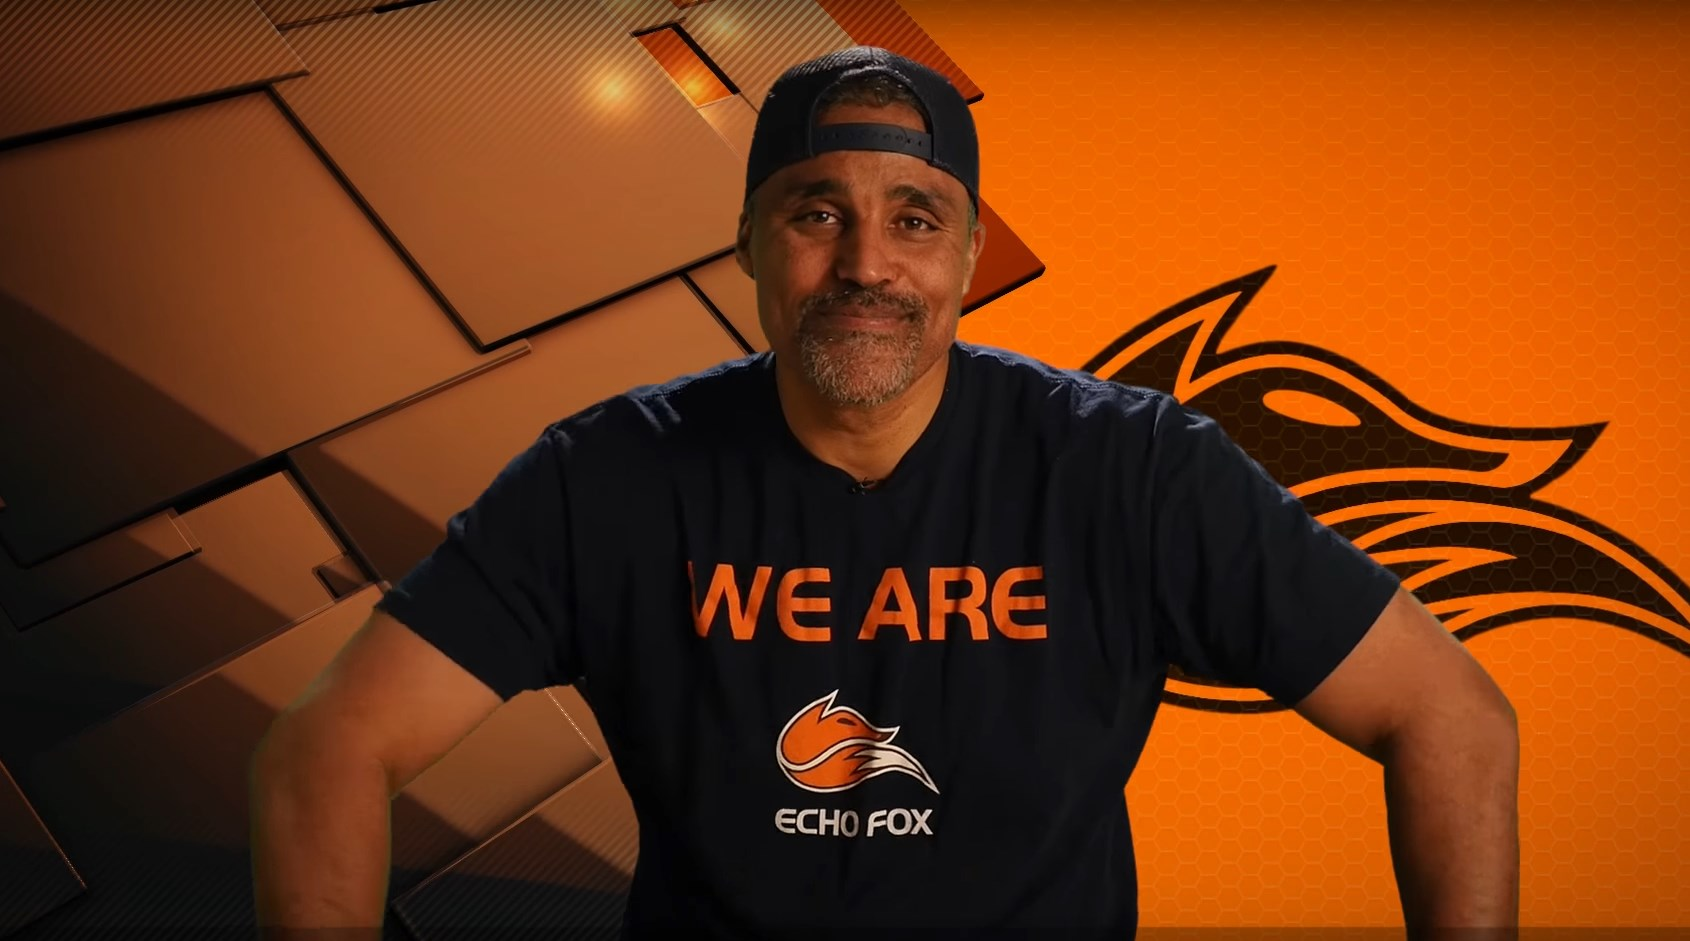 Rick Fox says he'll stay with Echo Fox if it ditches racist investor